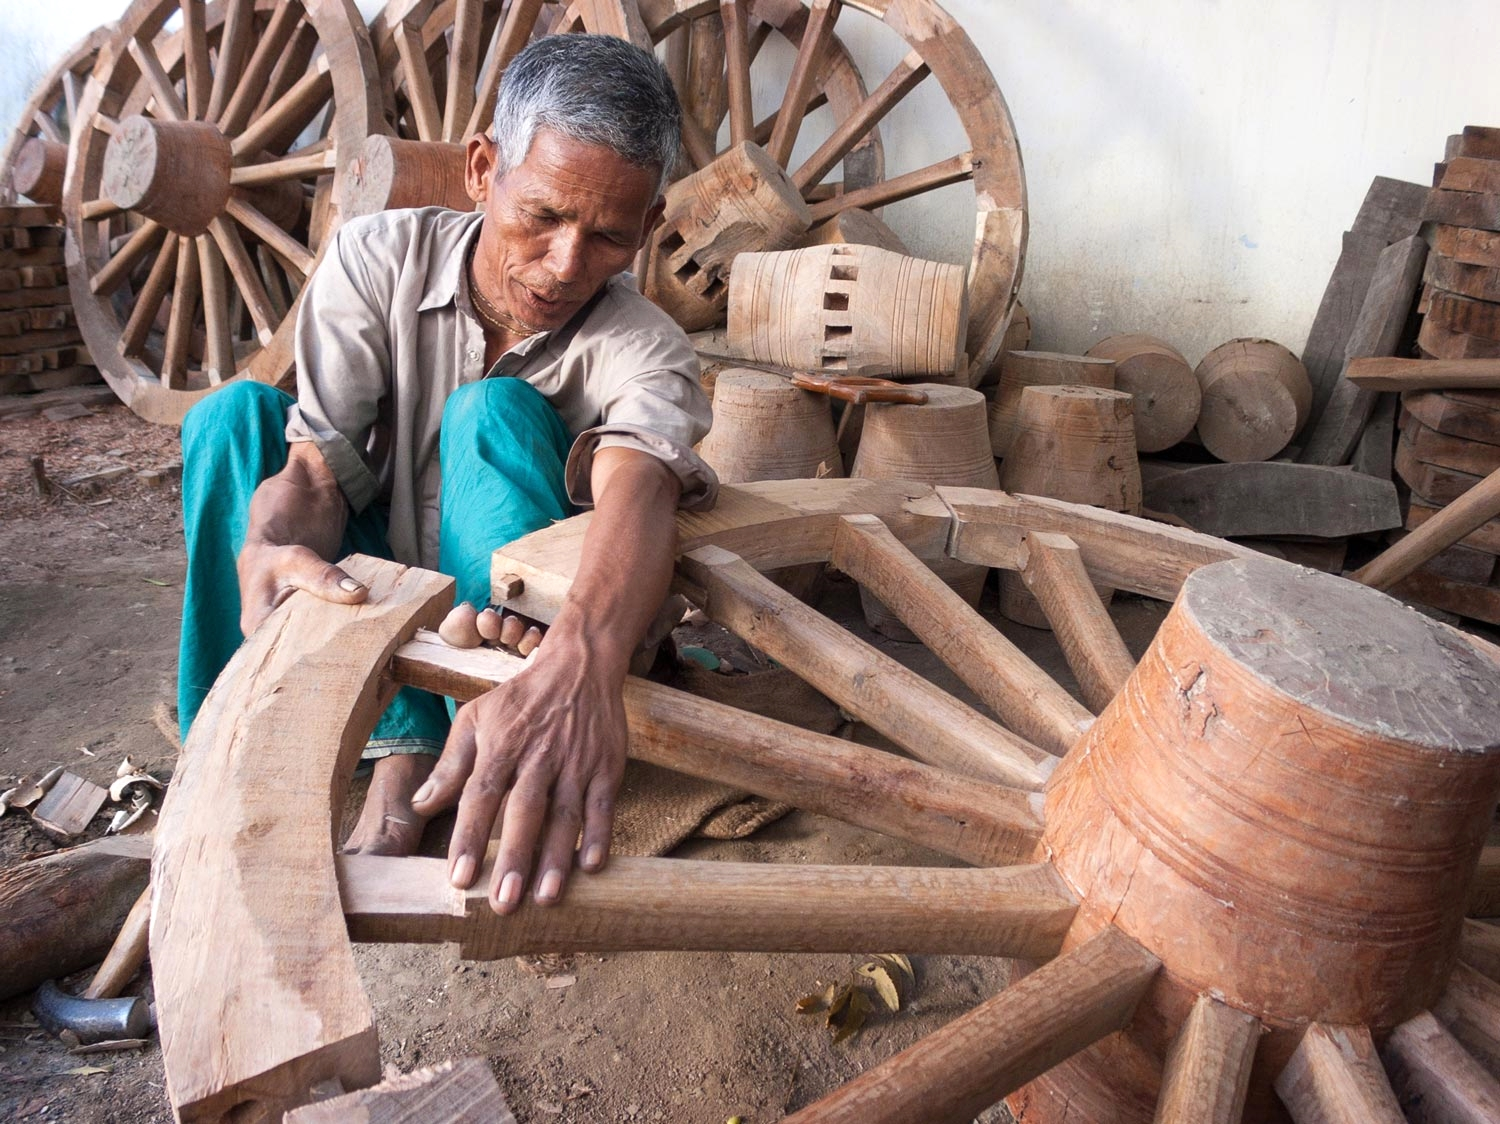 bangladesh-wheelmaker-carpenter.jpg